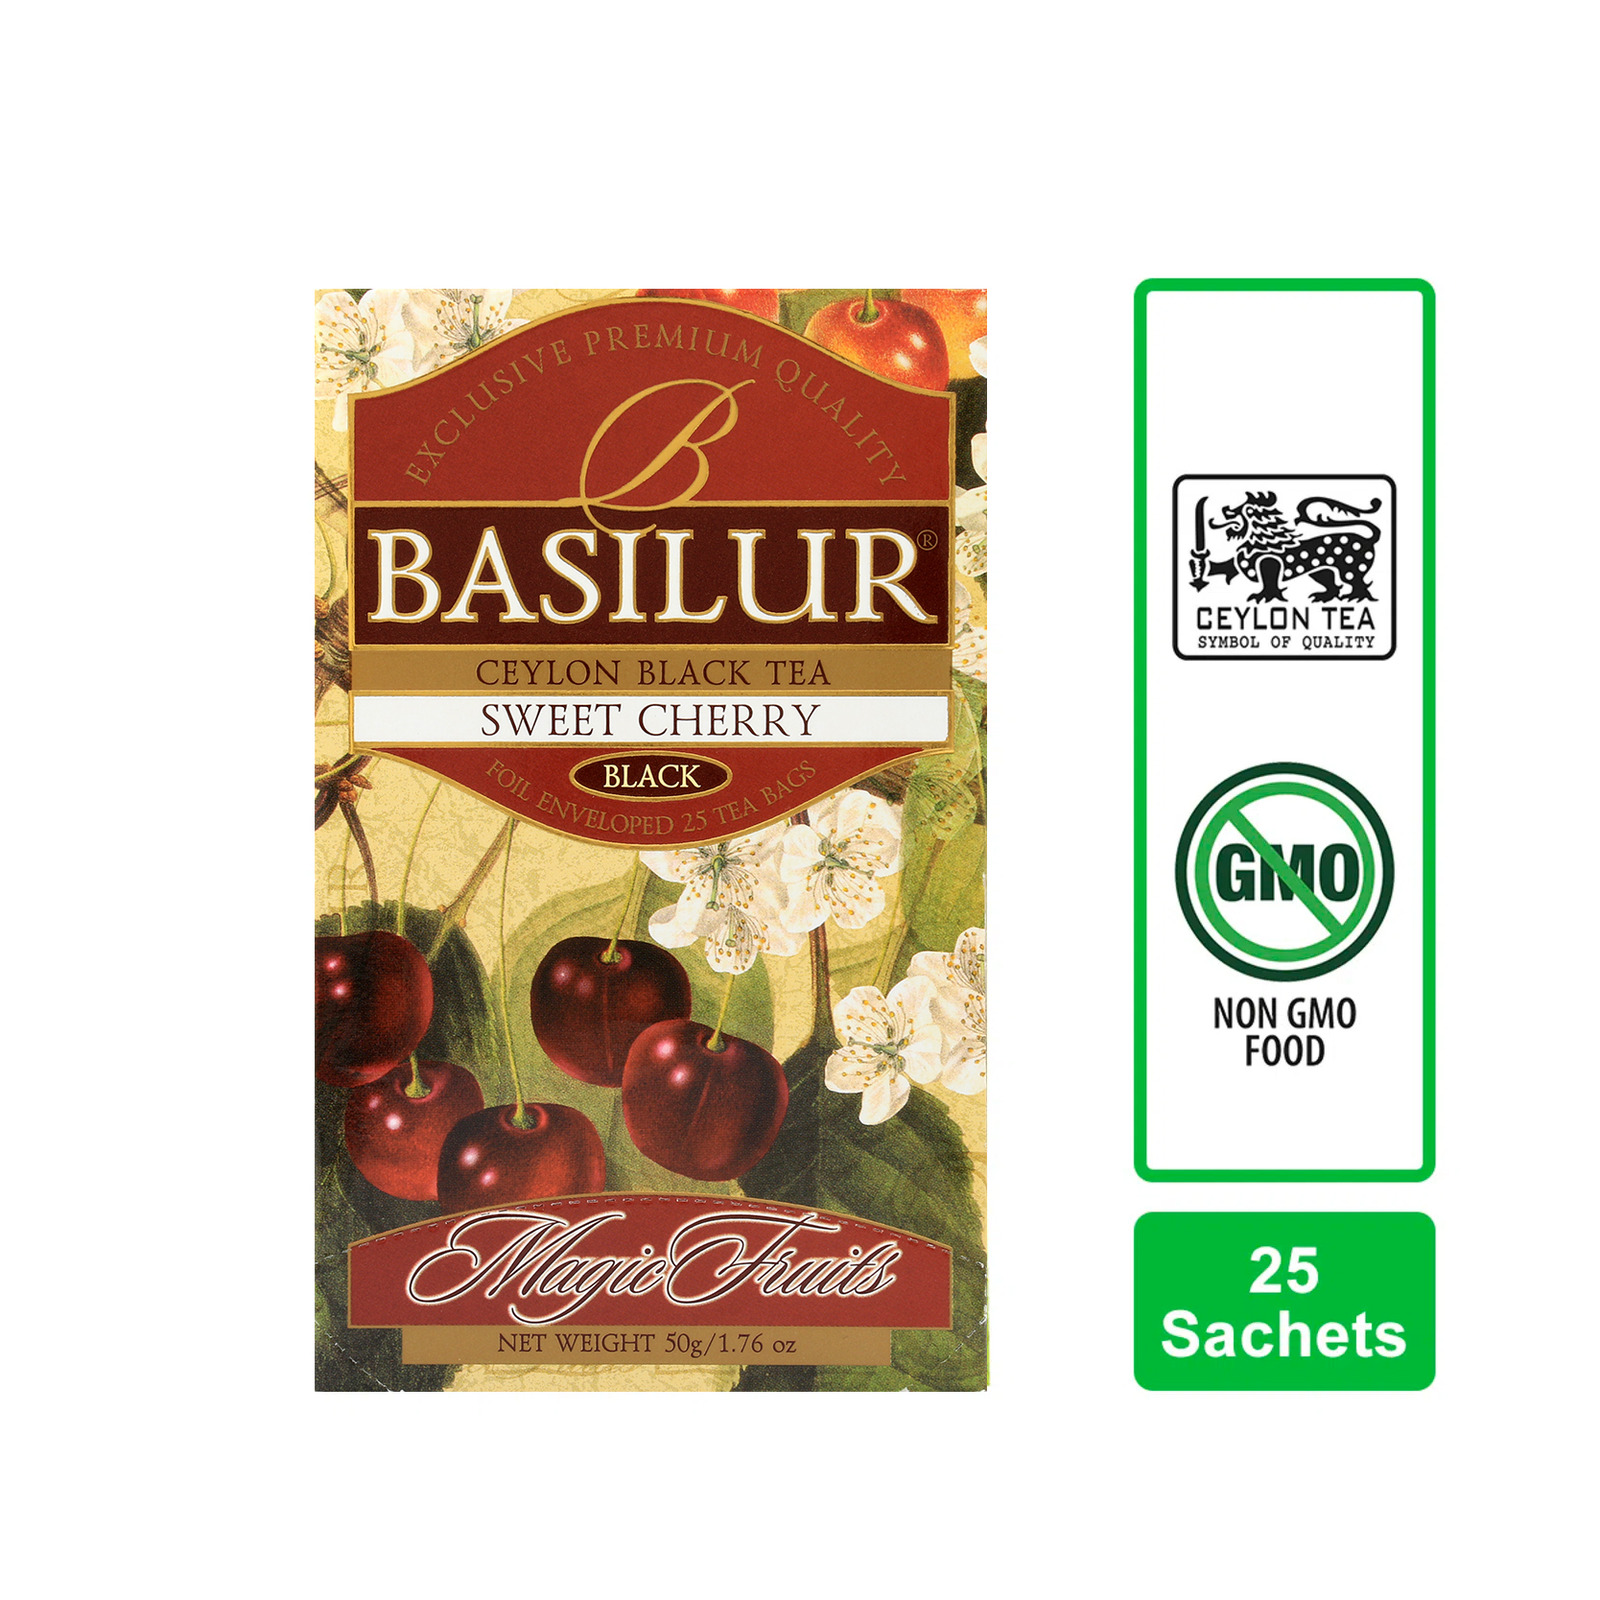 Basilur Sweet Cherry Black Tea